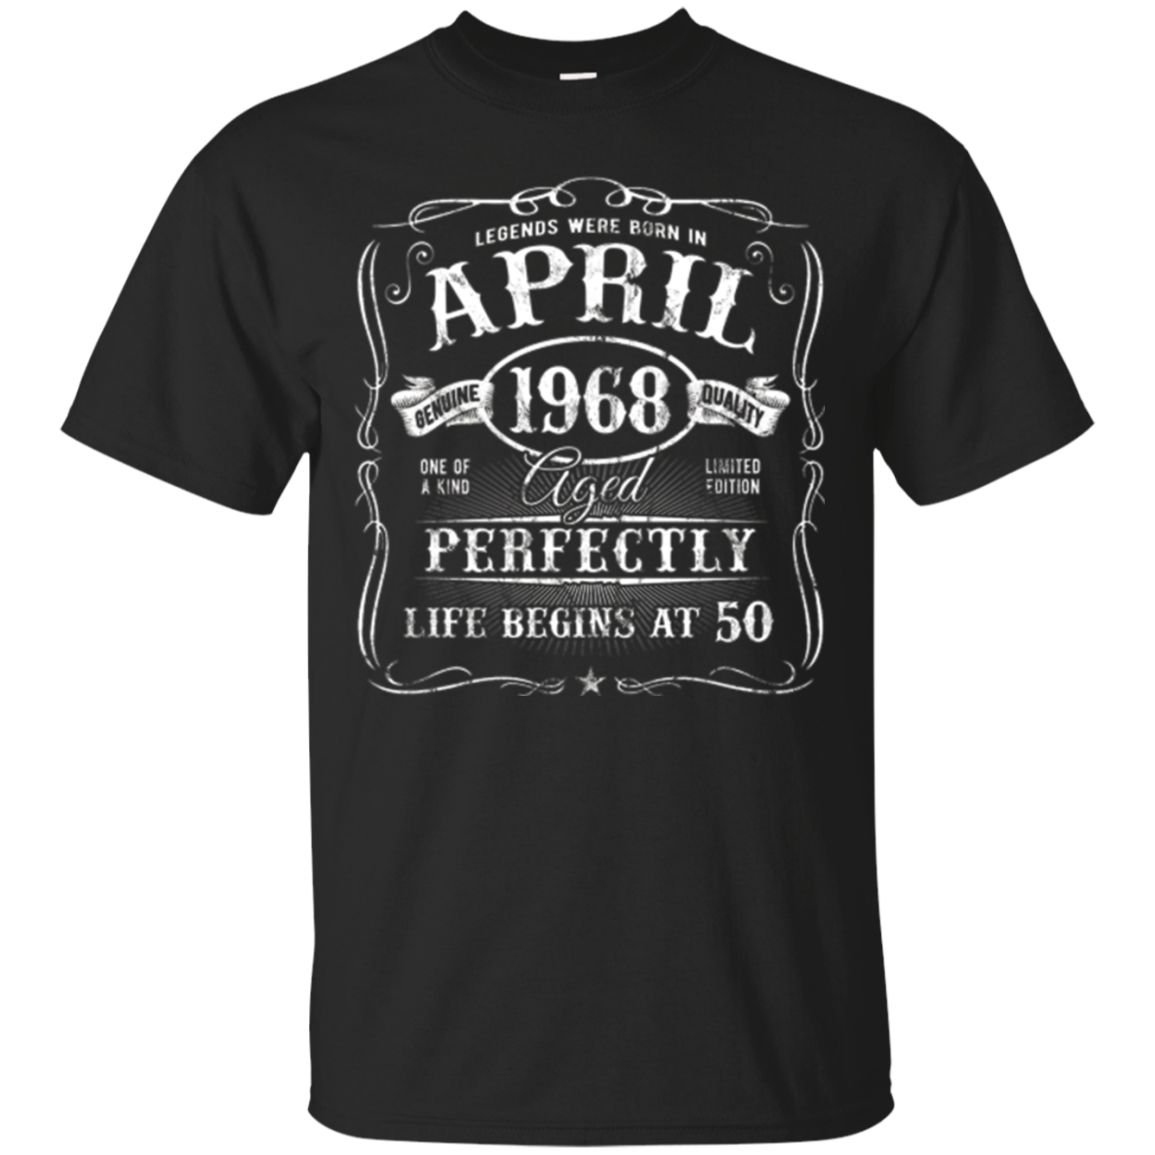 Legends Were Born In April 1968 Vintage 50th Birthday Shirt